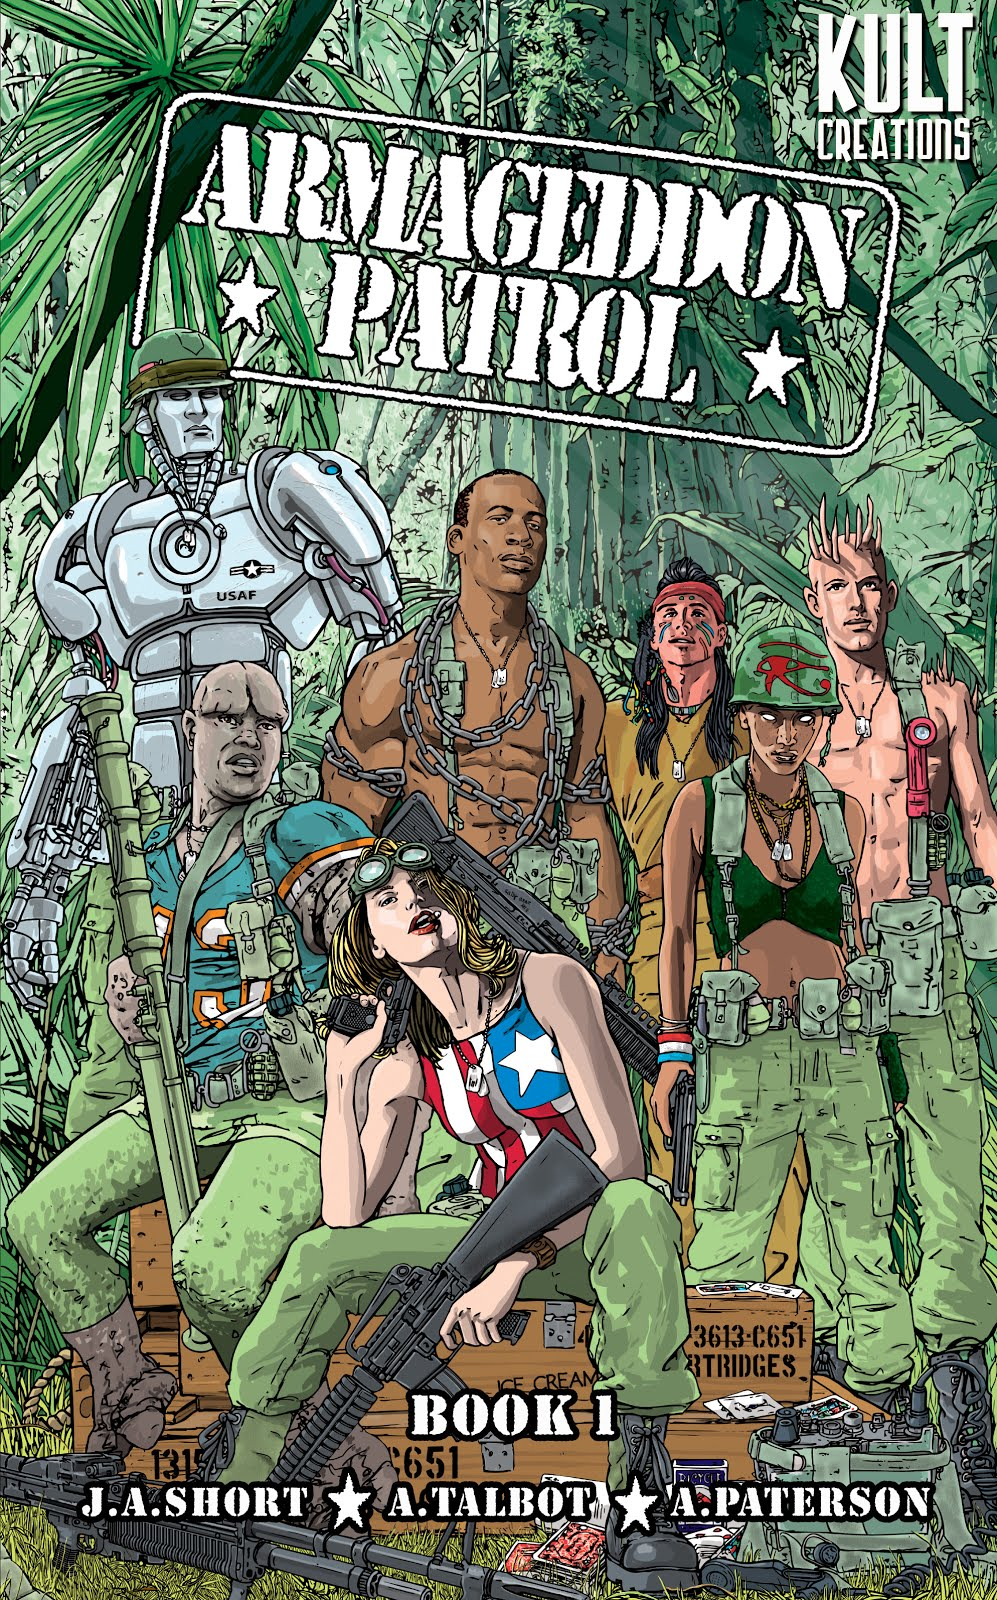 Buy ARMAGEDDON PATROL BOOK 1 BELOW!